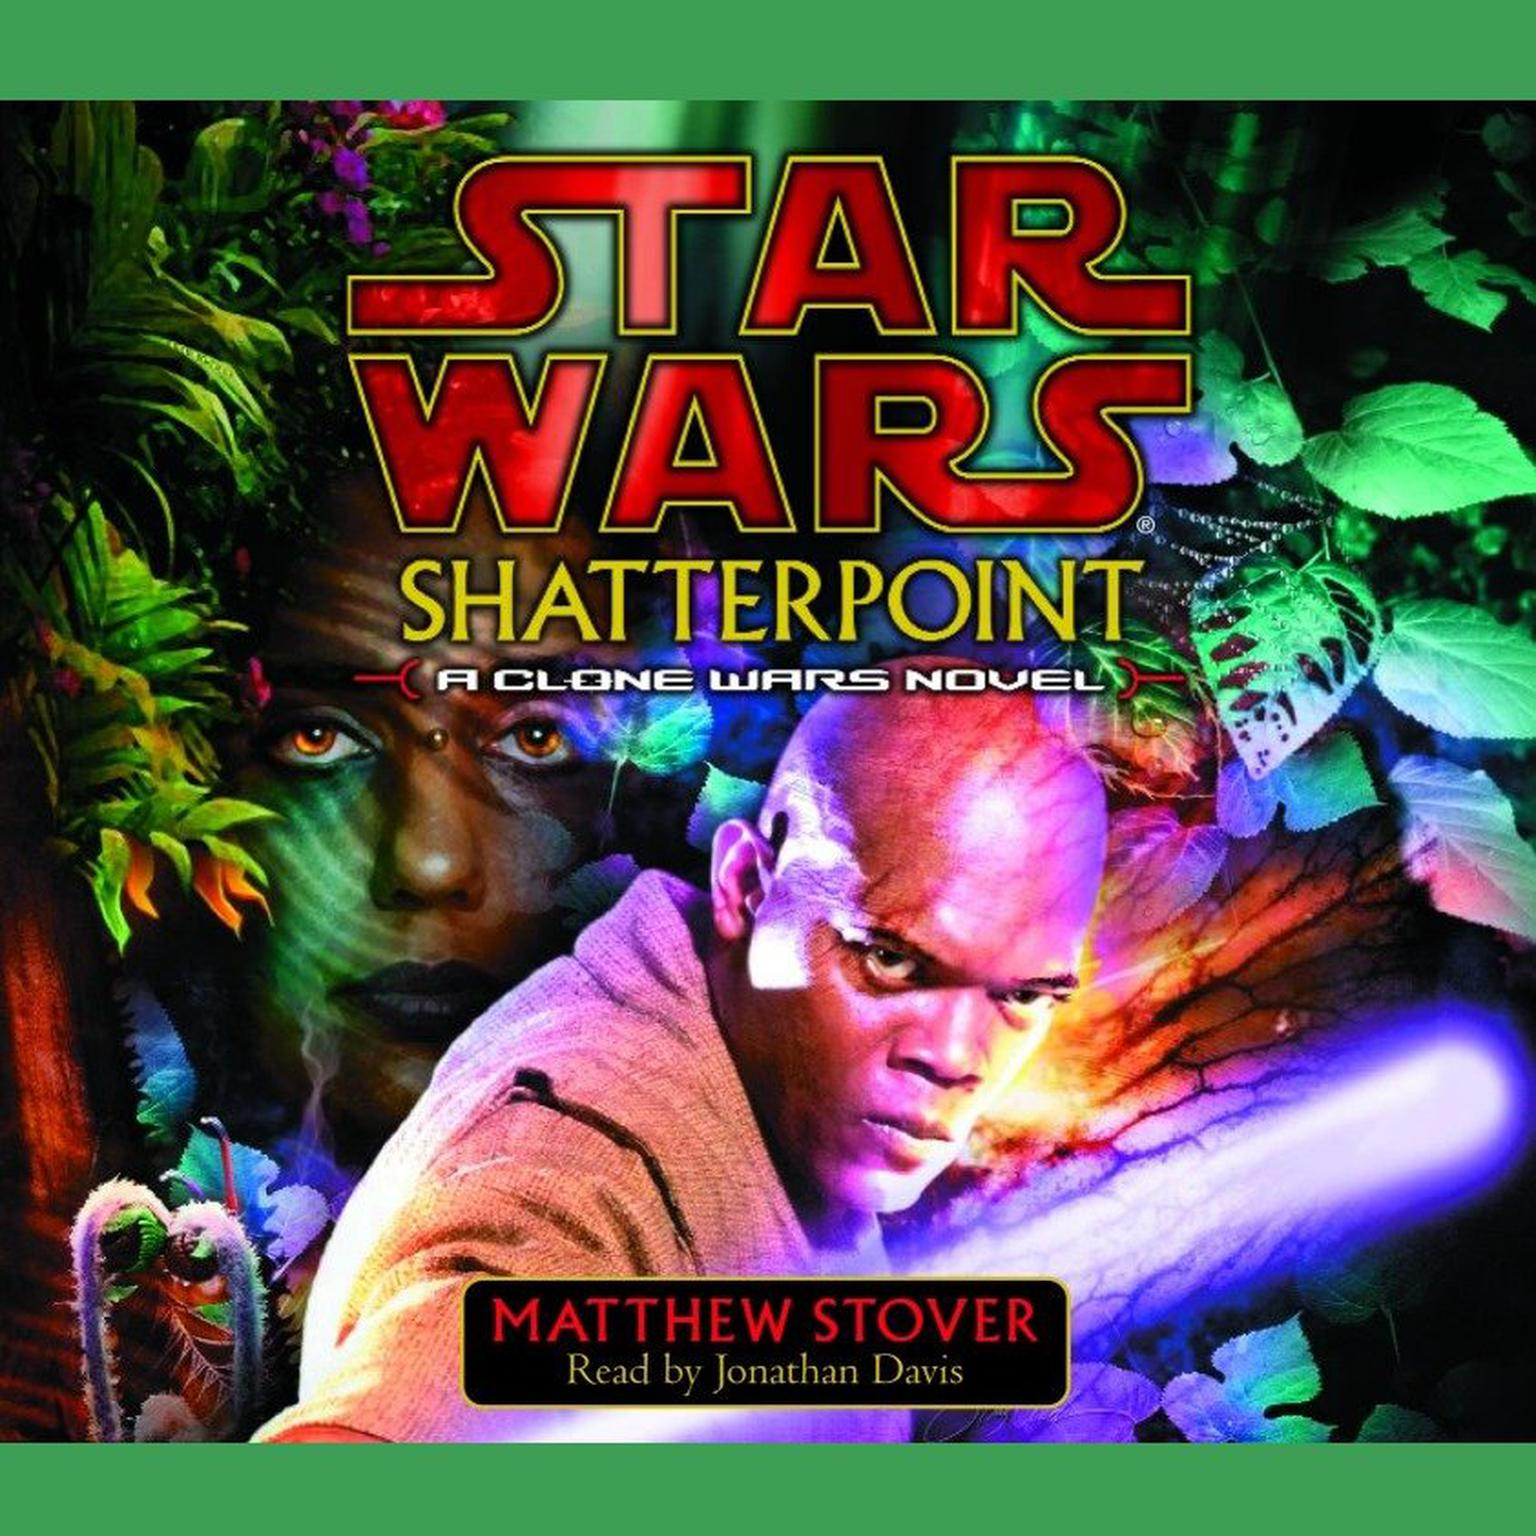 Star Wars: Shatterpoint (Abridged): A Clone Wars Novel Audiobook, by Matthew Stover